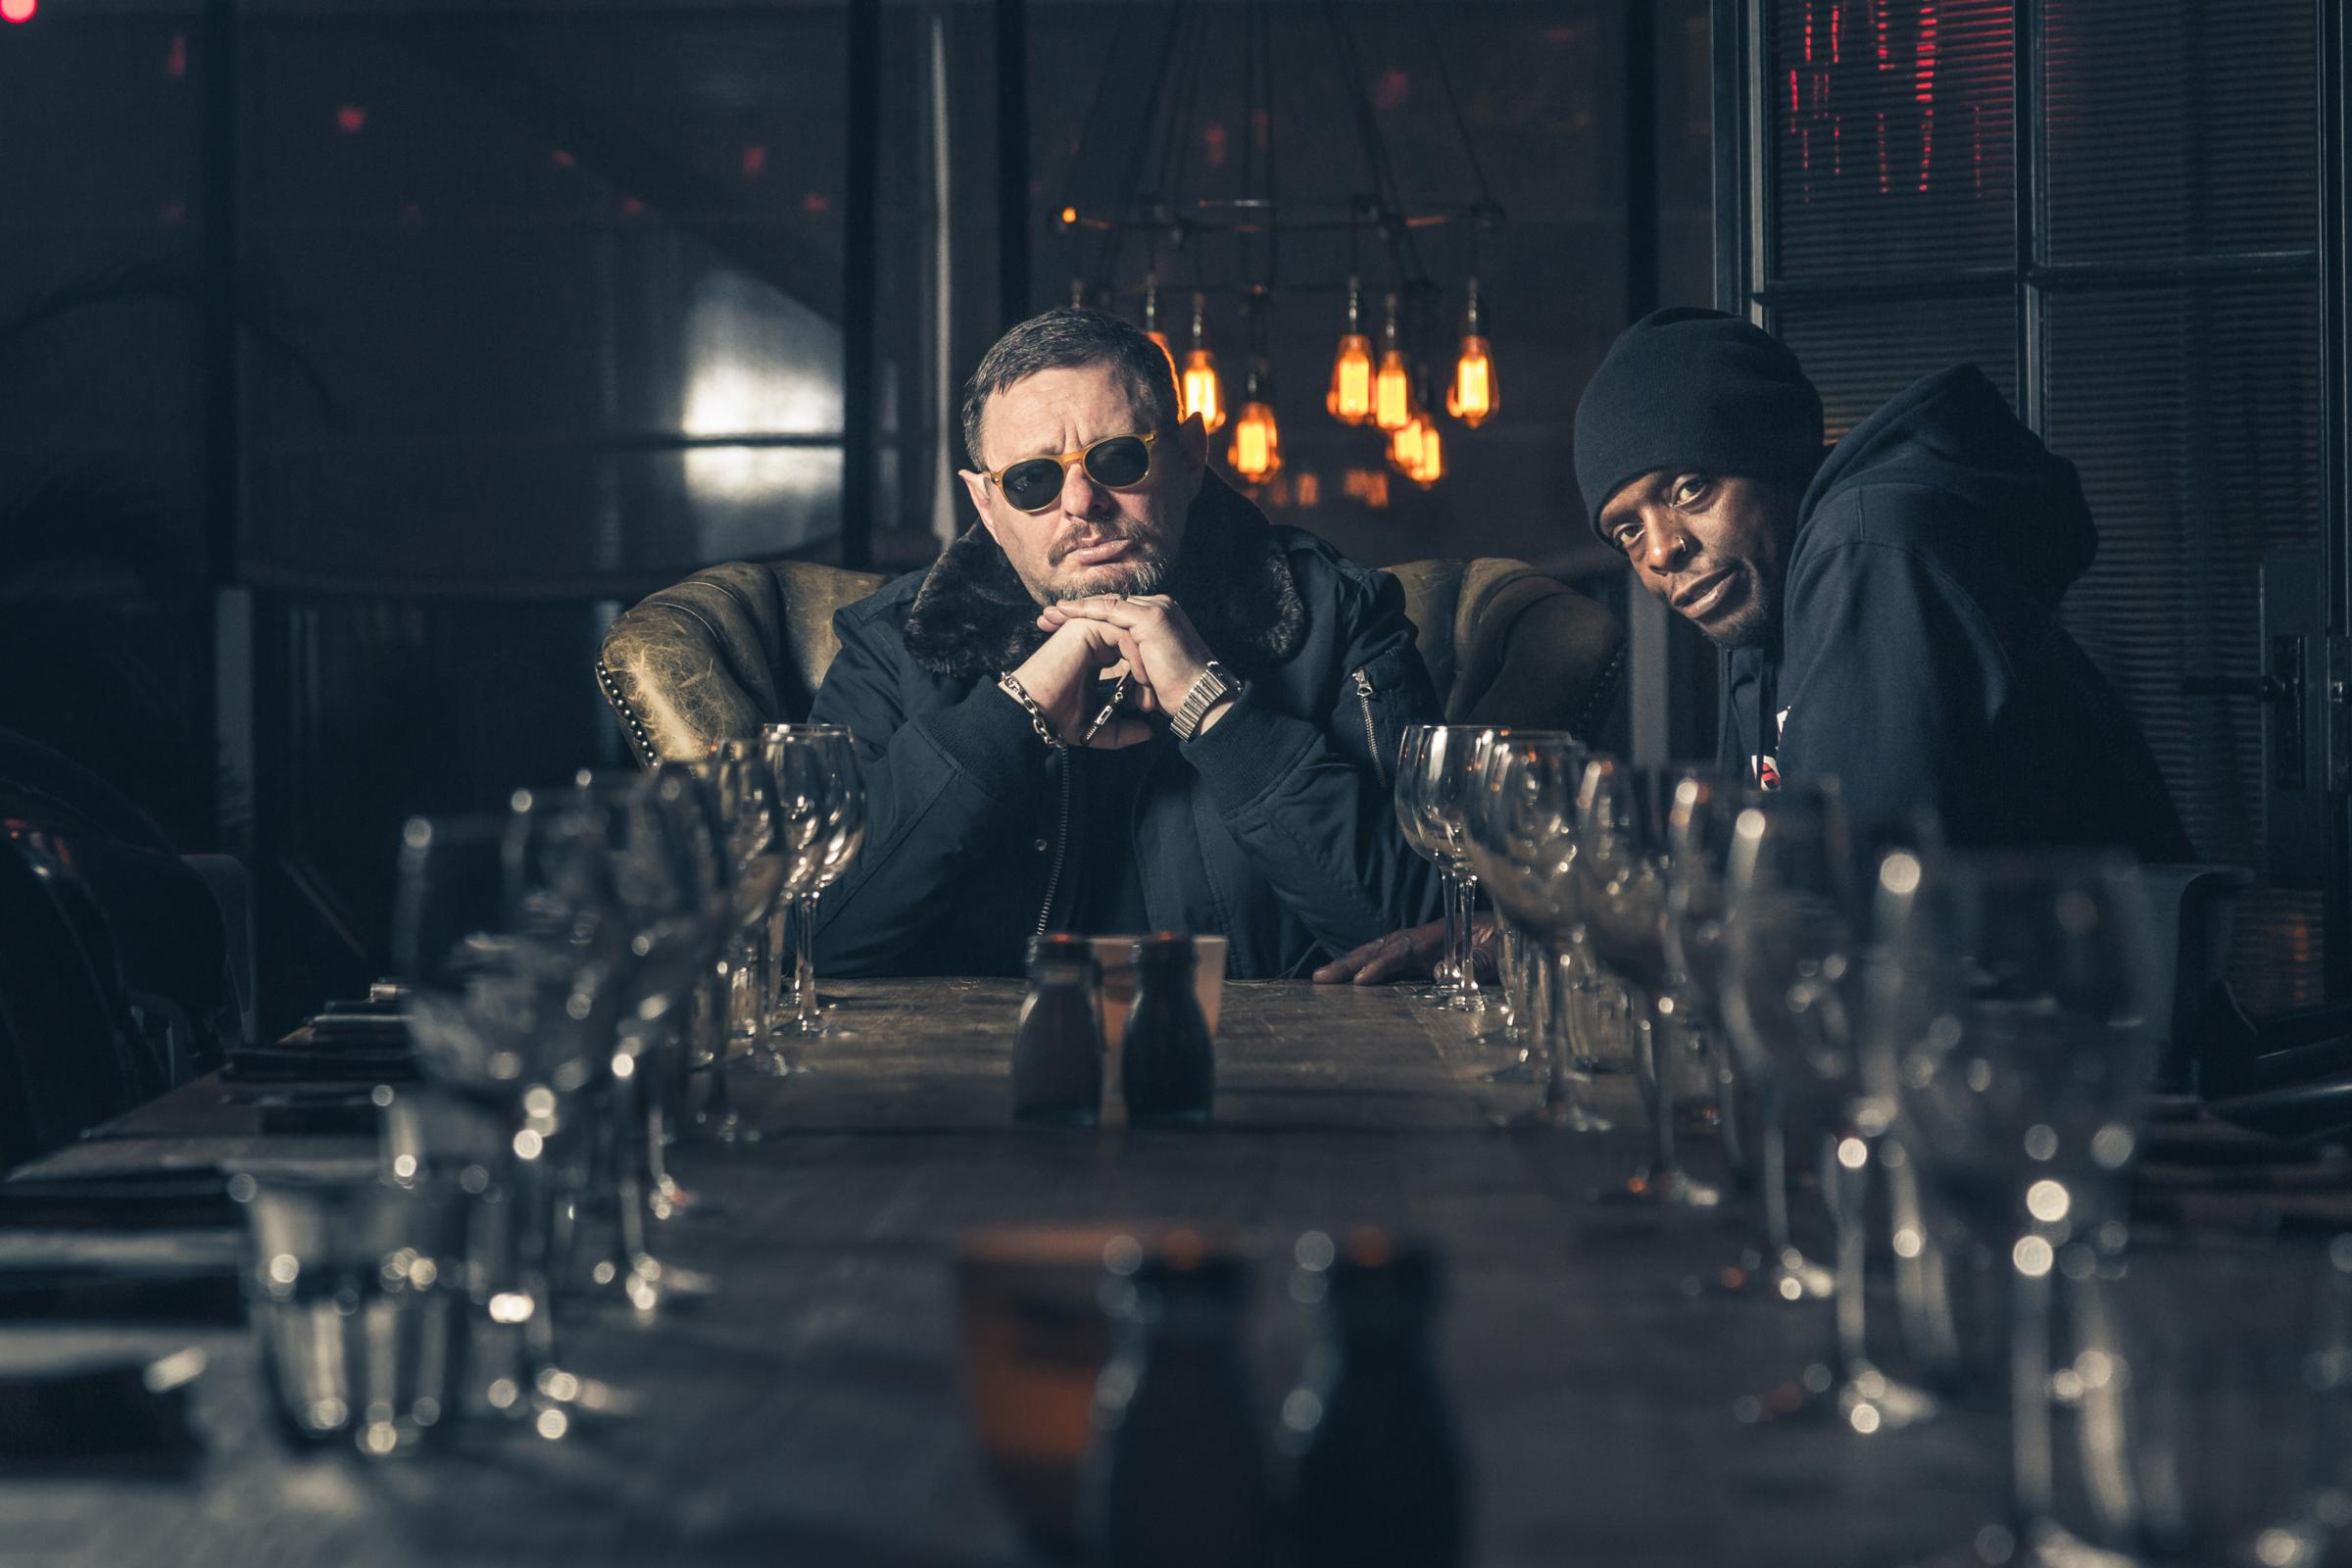 Shaun Ryder and Kermit are Black Grape